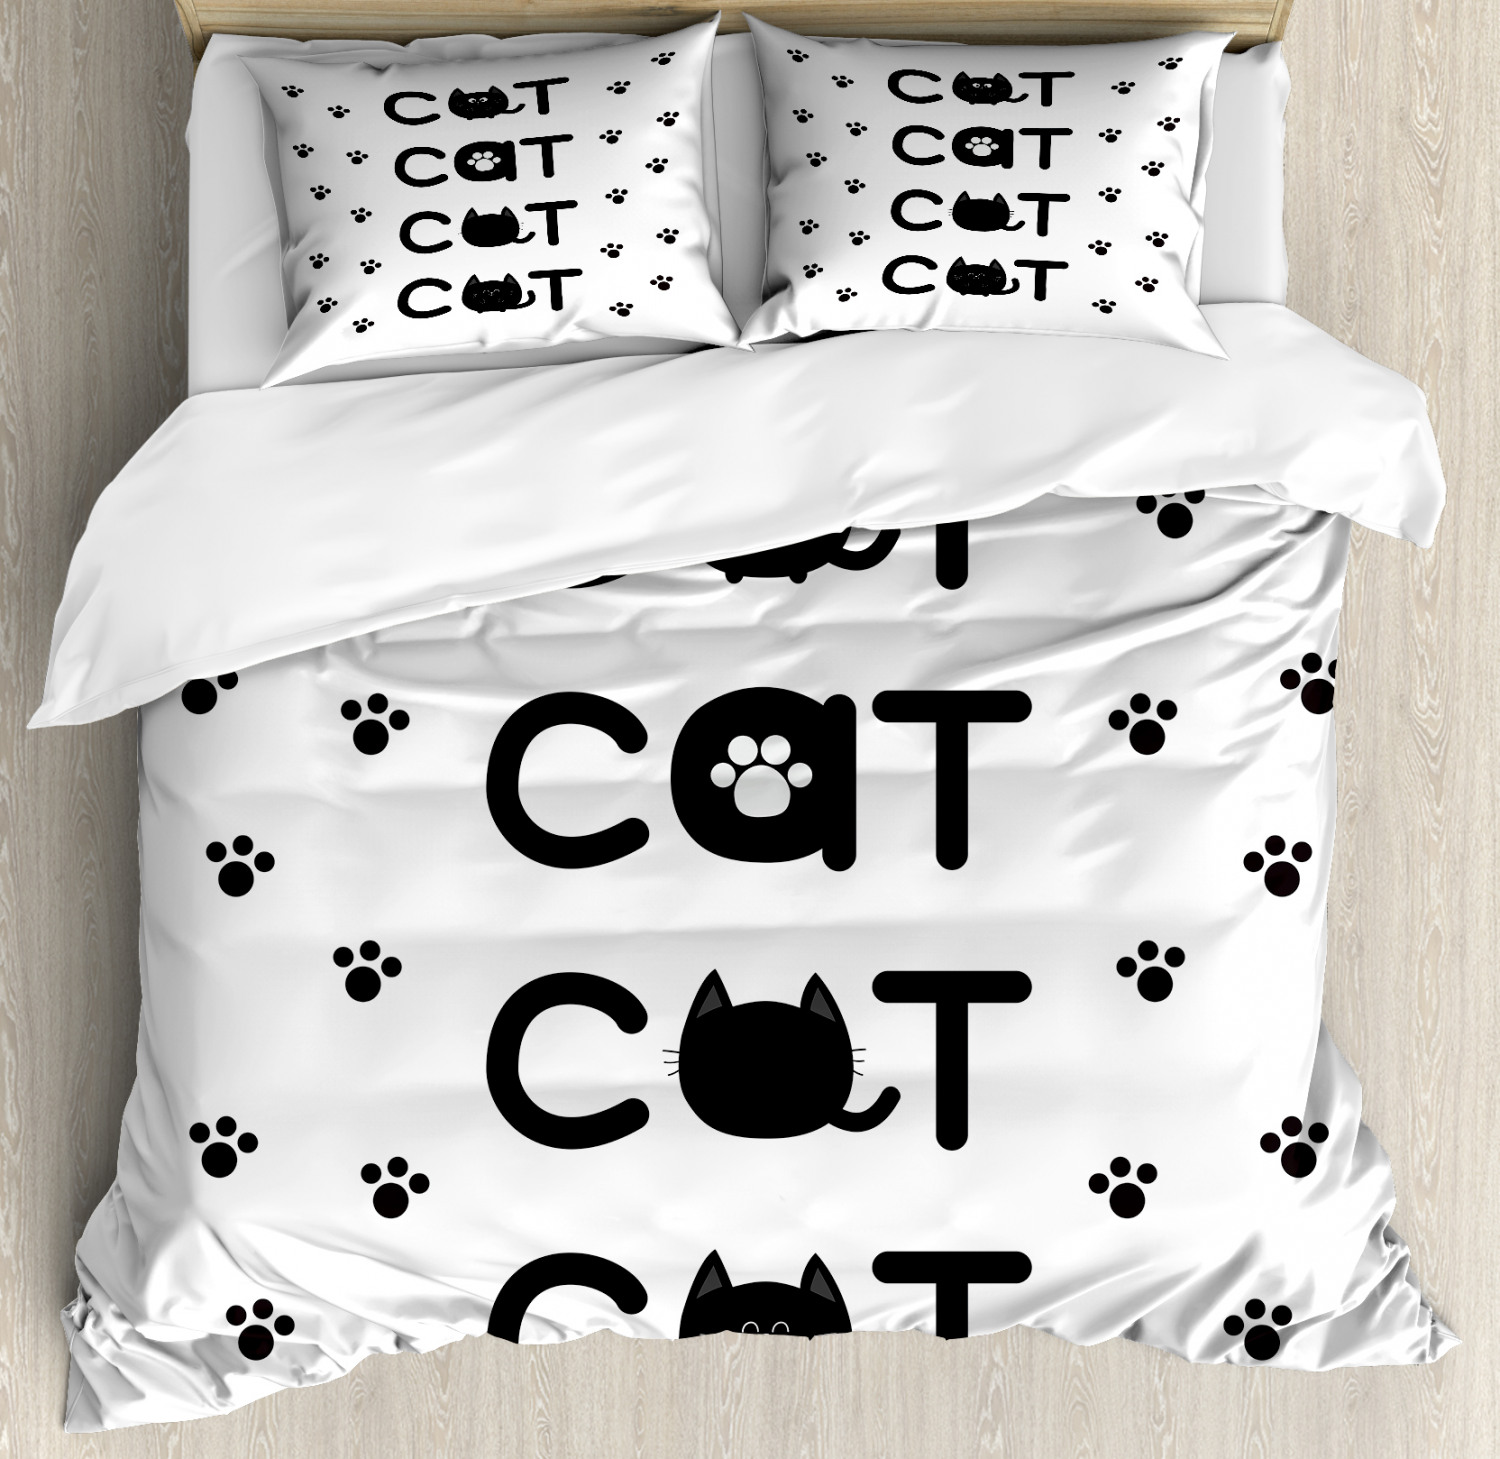 Kitty Duvet Cover Set Cat Text Out Of Round Shaped Cute Cats With Little Paw Prints In Black And White Decorative Bedding Set With Pillow Shams Black White By Ambesonne Walmart Com